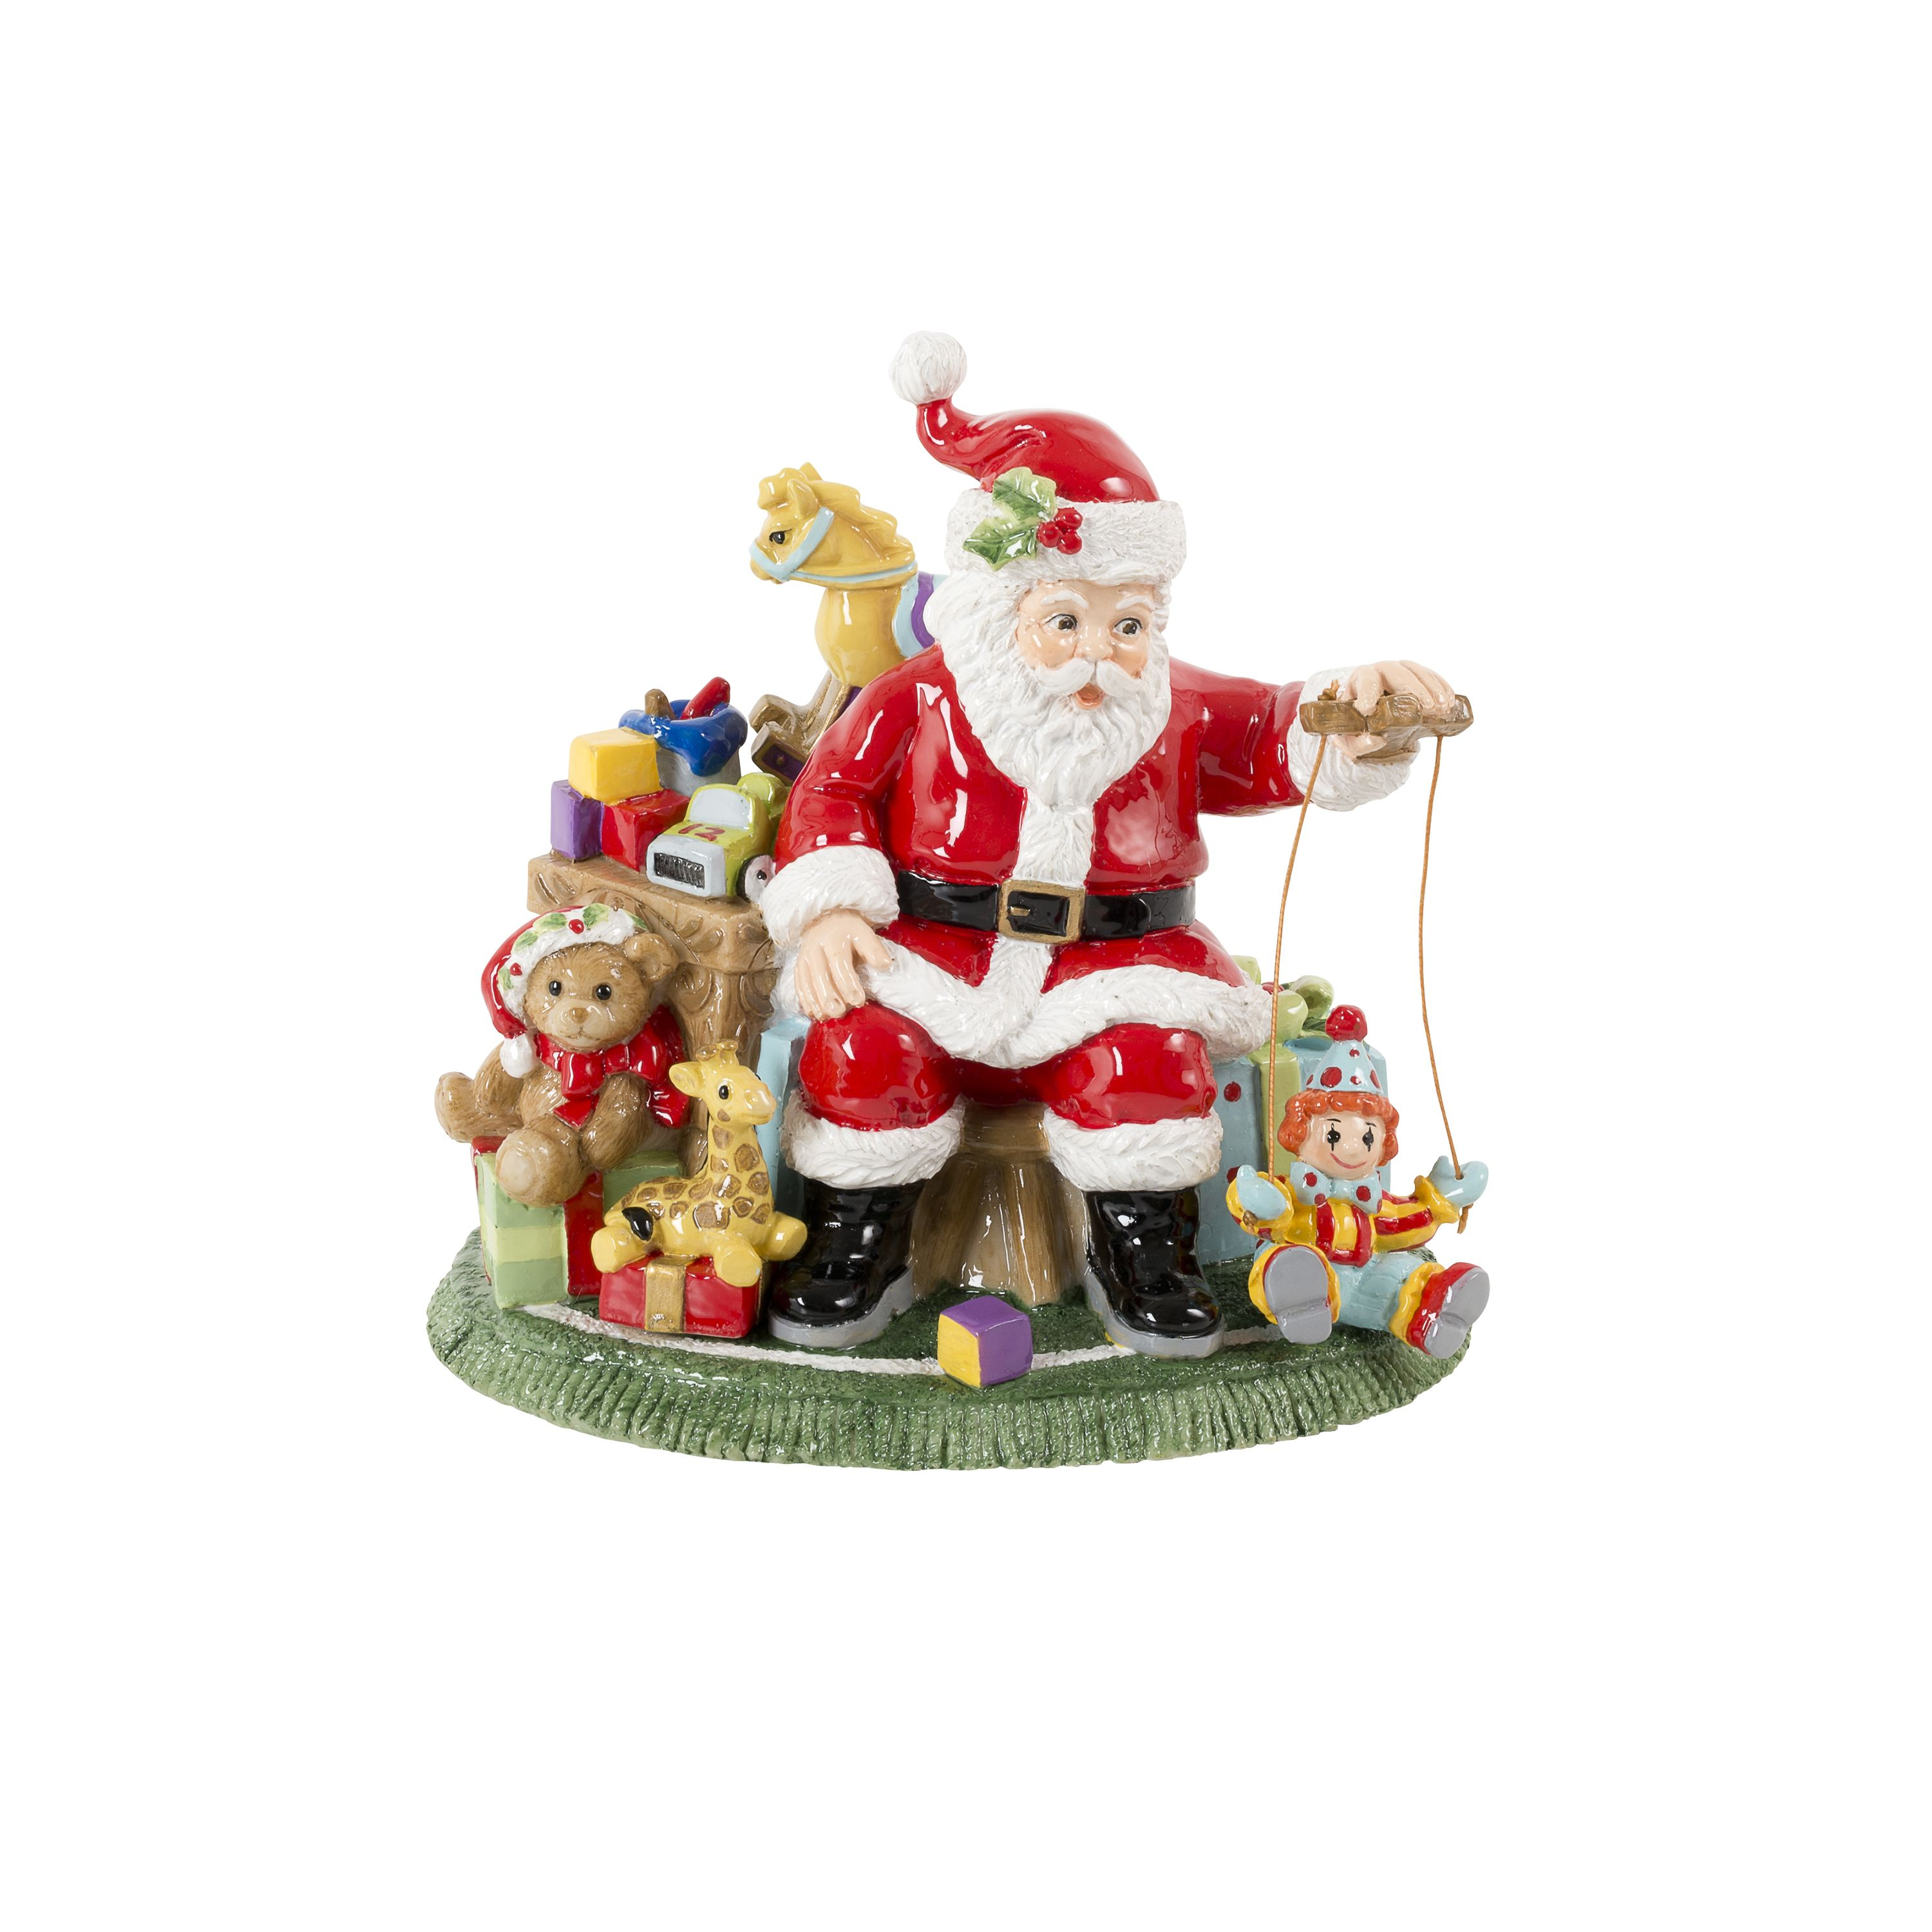 santa caboodle dreams possible western possibledreams westernsantas santas kit and decor htm decorative